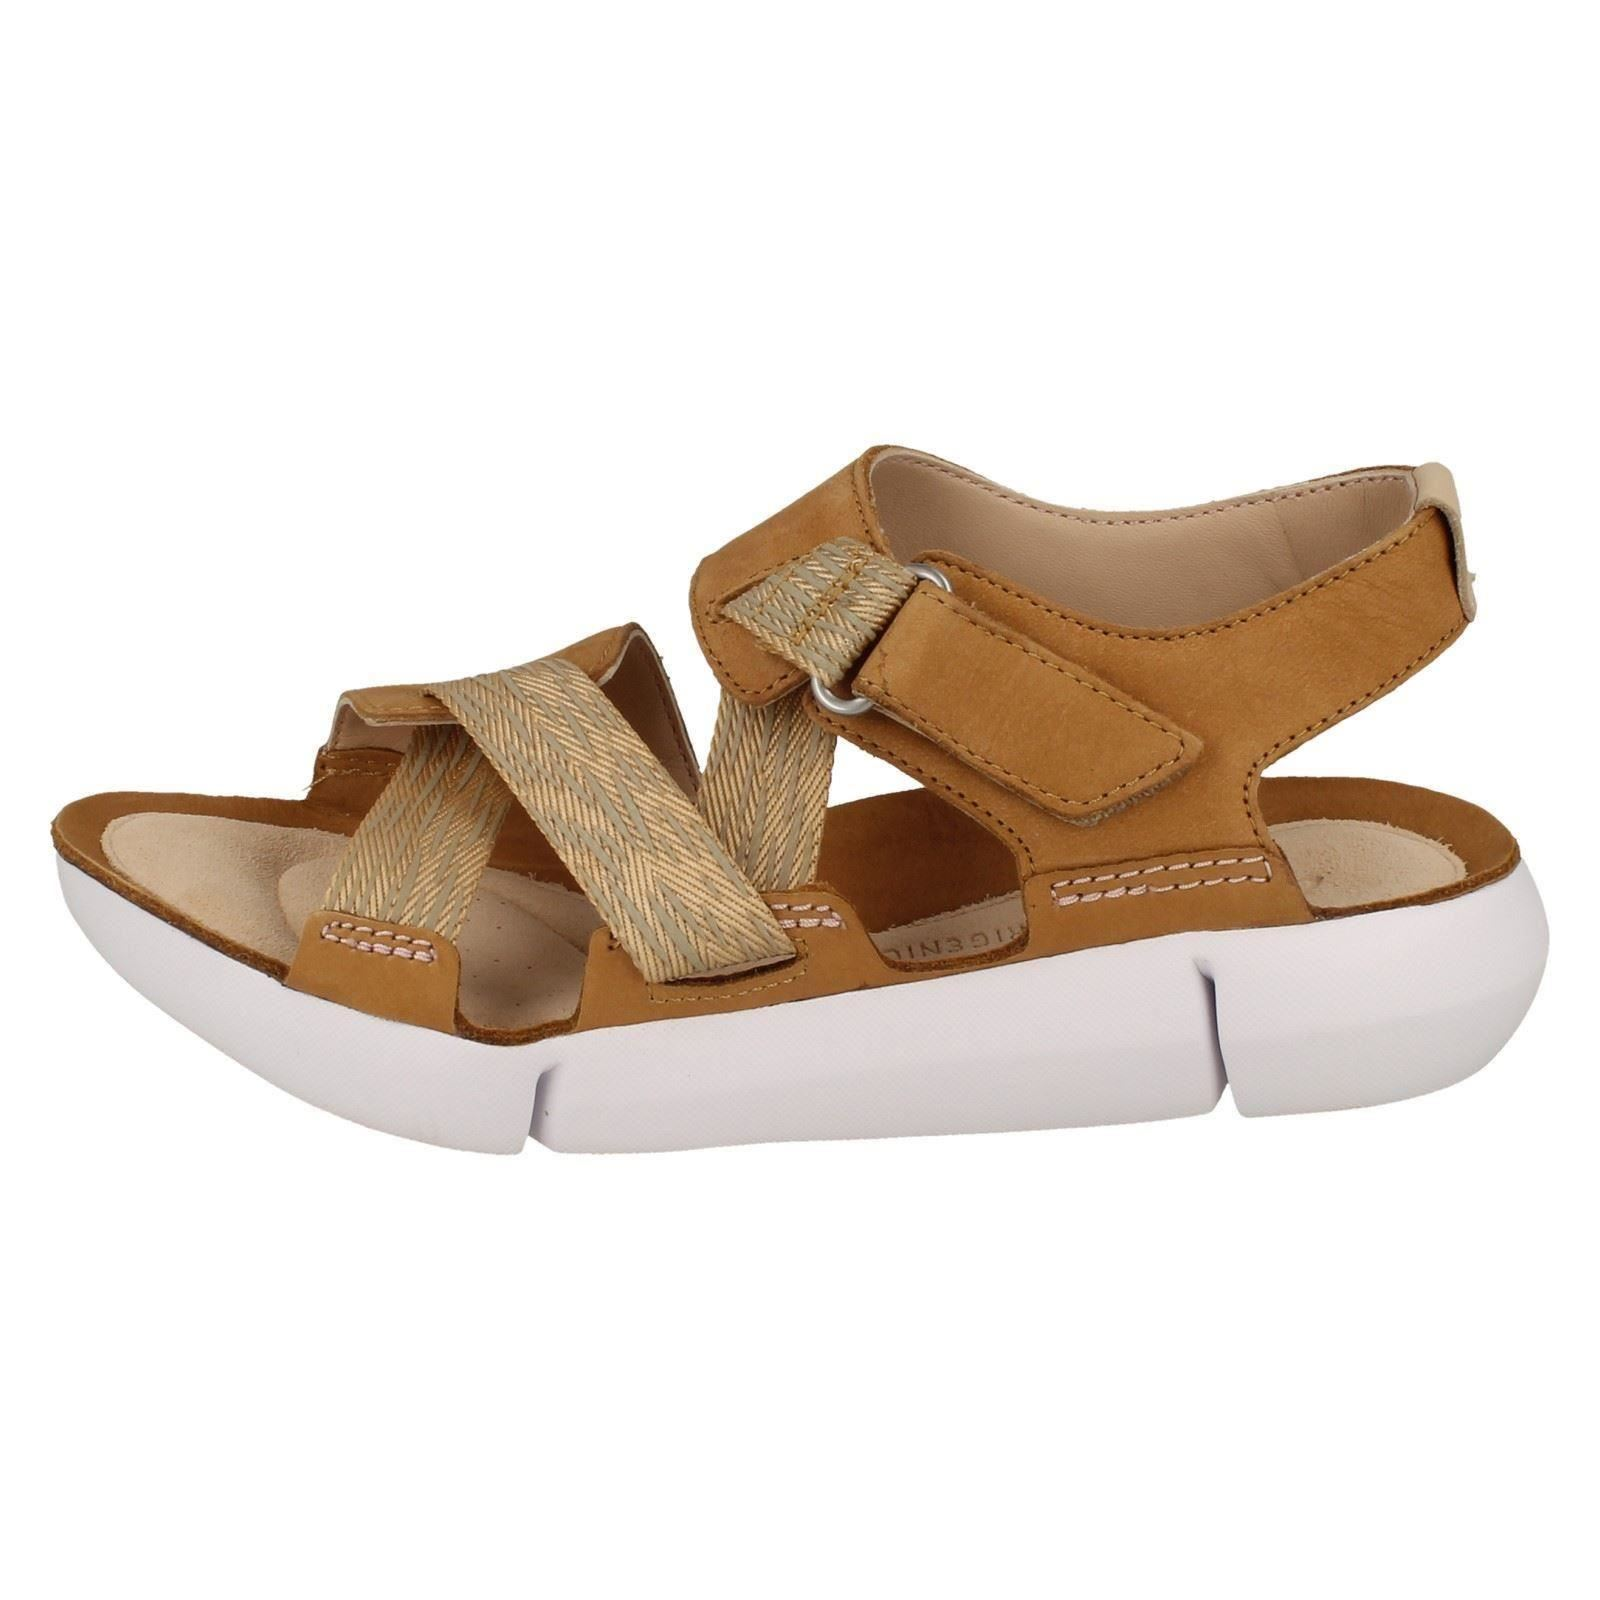 Details about Ladies Clarks Leather Sporty Sandals Tri Clover